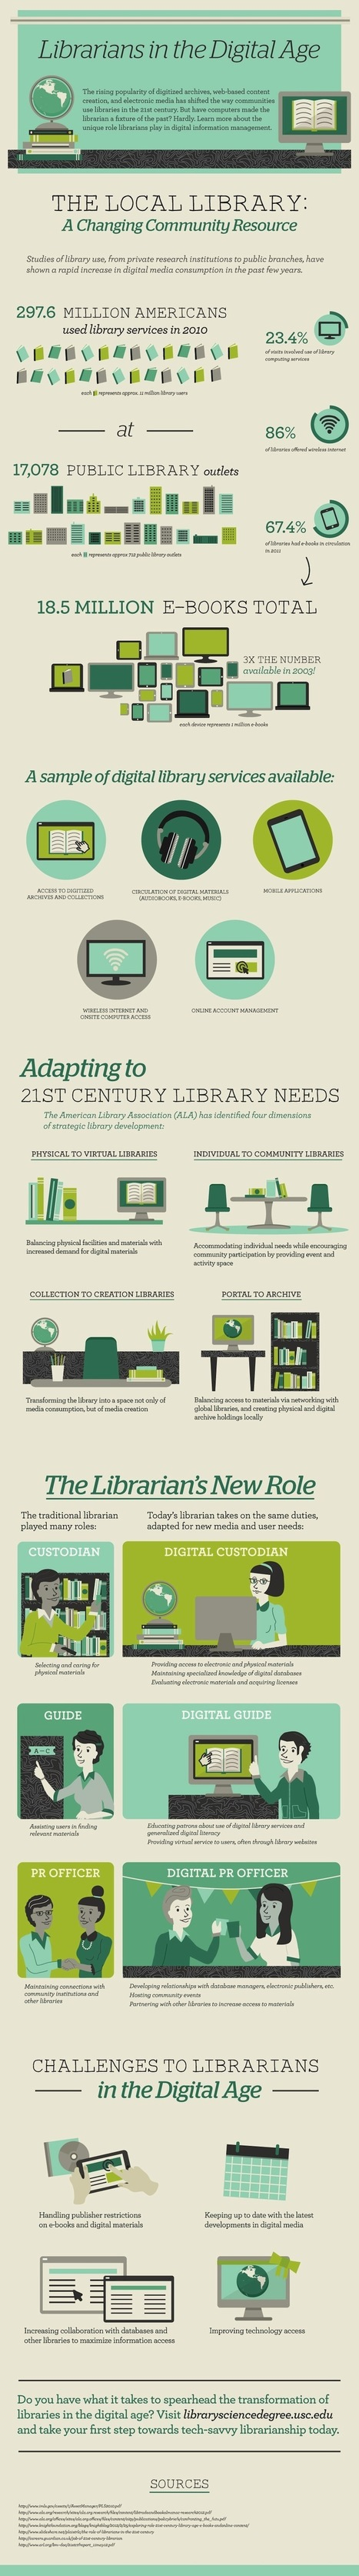 In digital age, librarians are needed more than ever [infographic] | Managing Technology and Talent for Learning & Innovation | Scoop.it